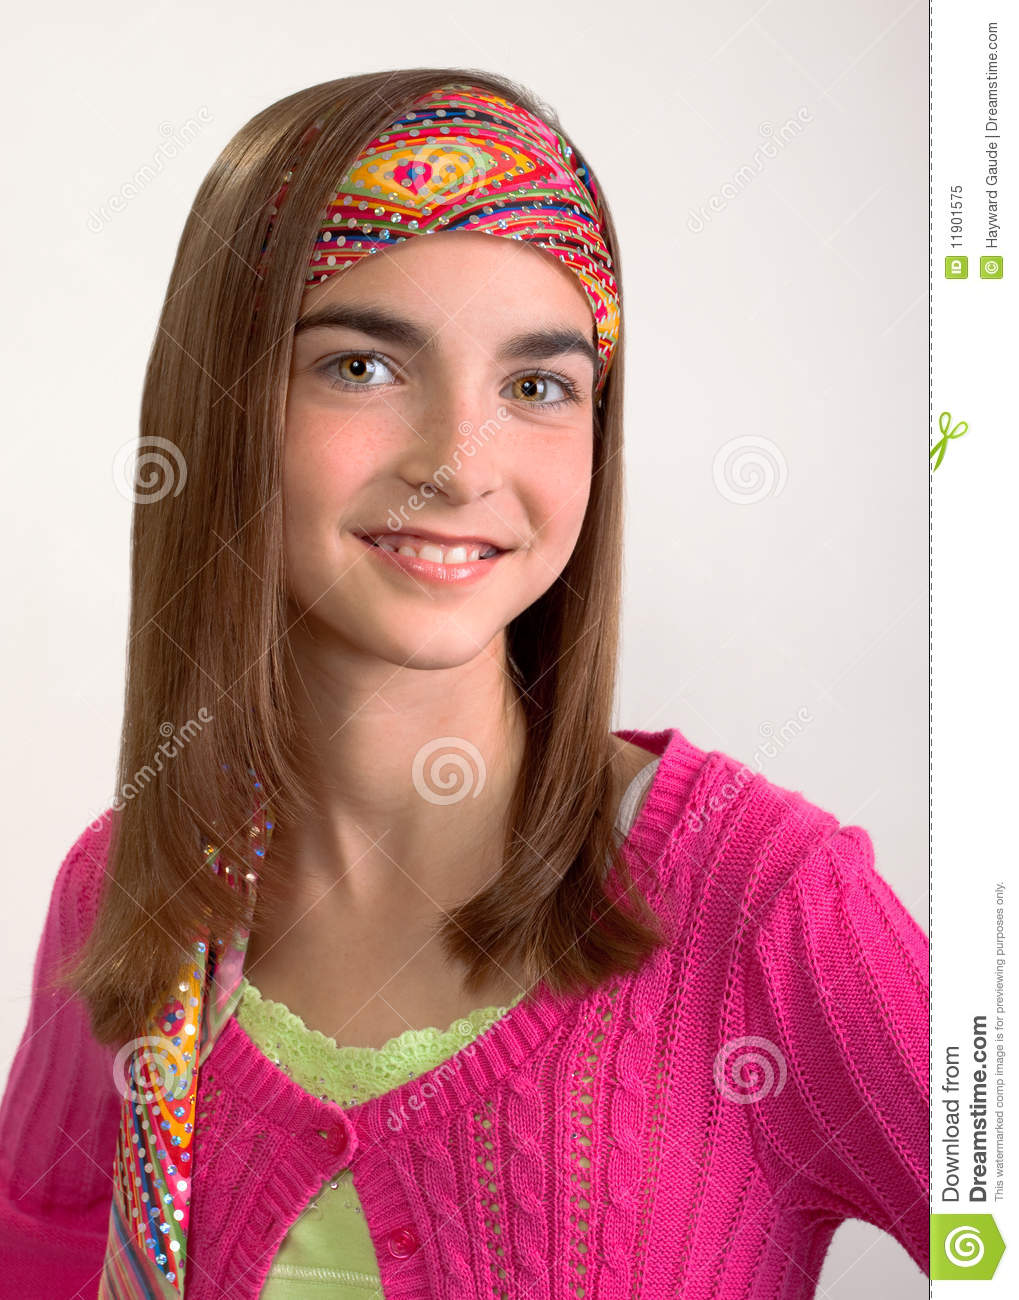 Young pre-teen girl in retro 1960's outfit.